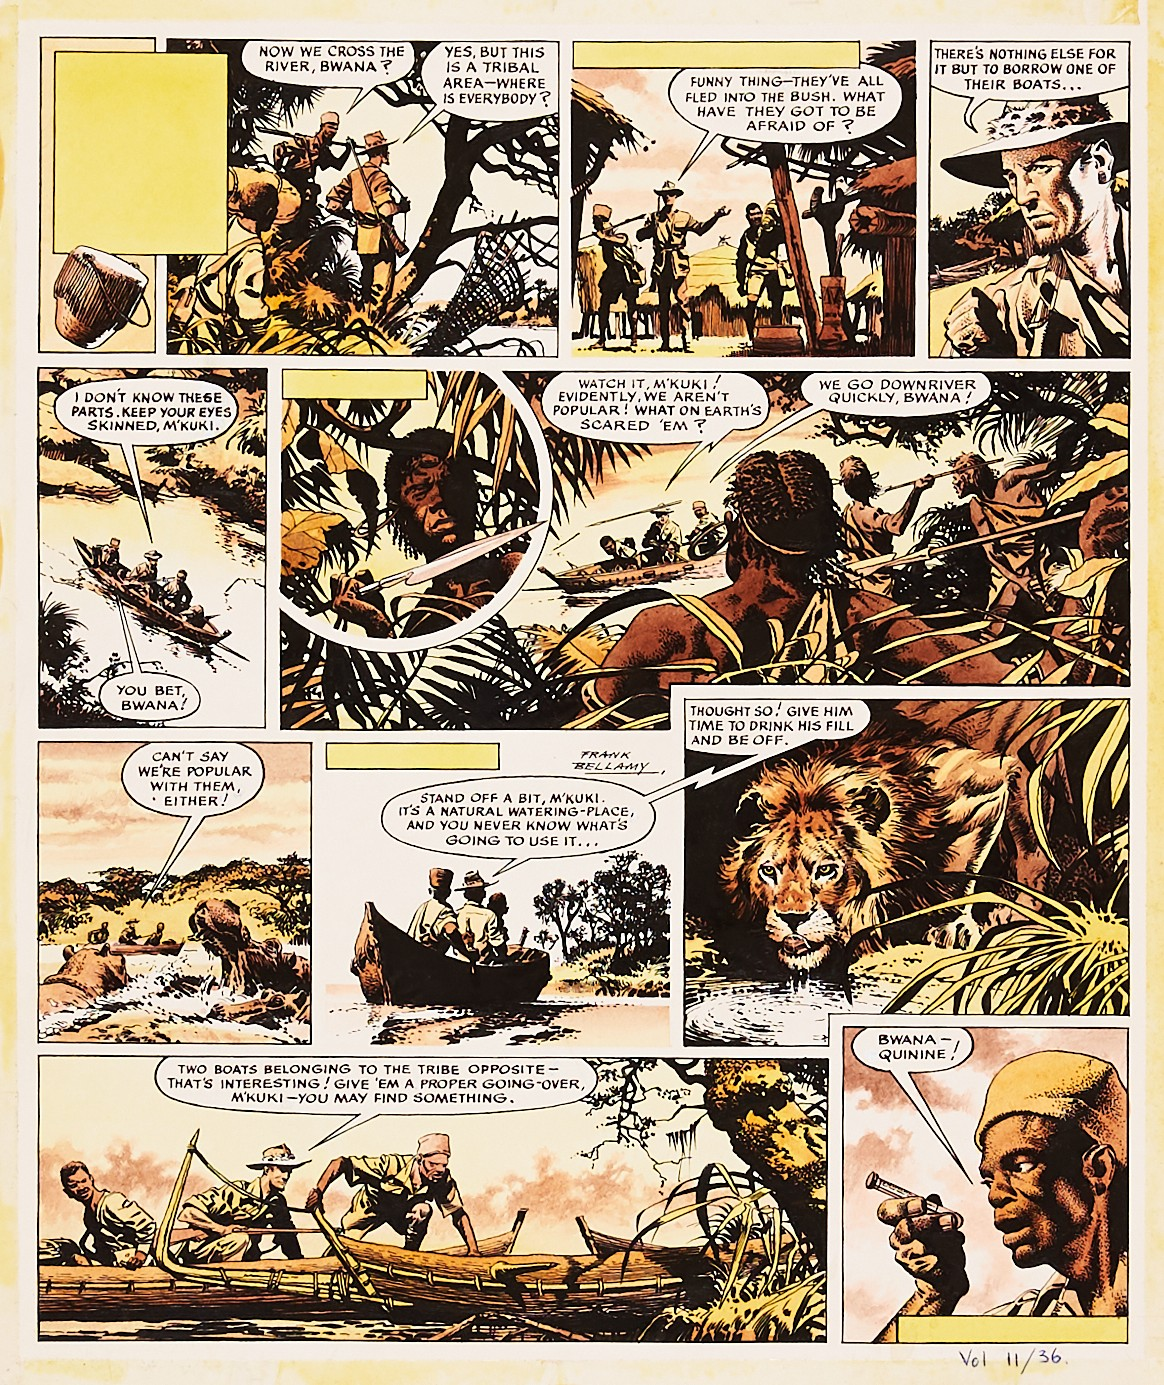 Lot 95 - Fraser of Africa/Eagle original artwork (1960) drawn, painted and signed by Frank Bellamy from The